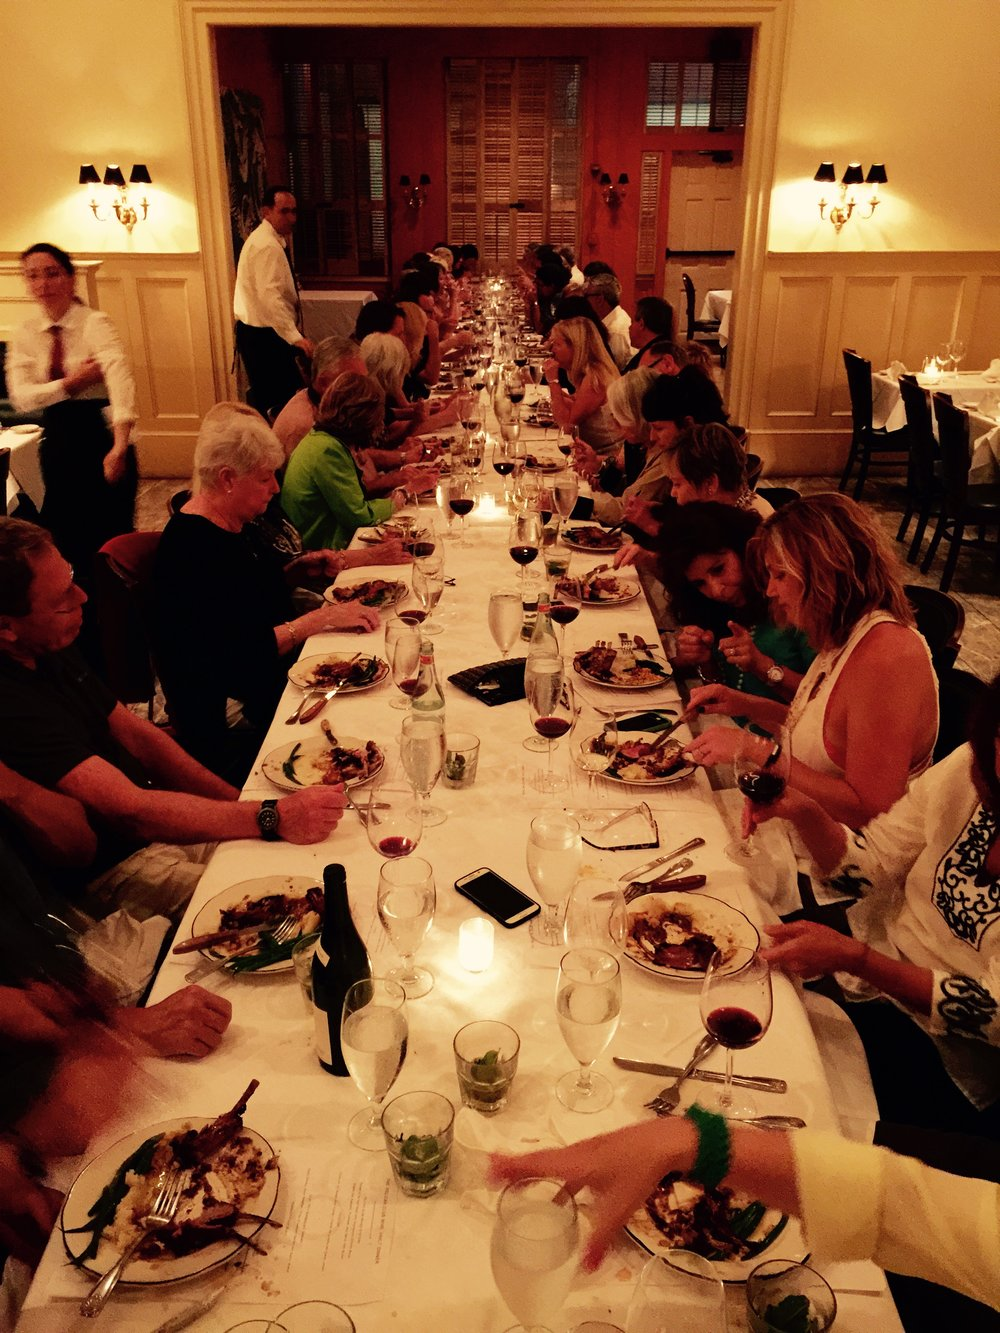 Finale dinner for 57 people at one table  at Pelican Club, one of the best restaurants in the Quarter.